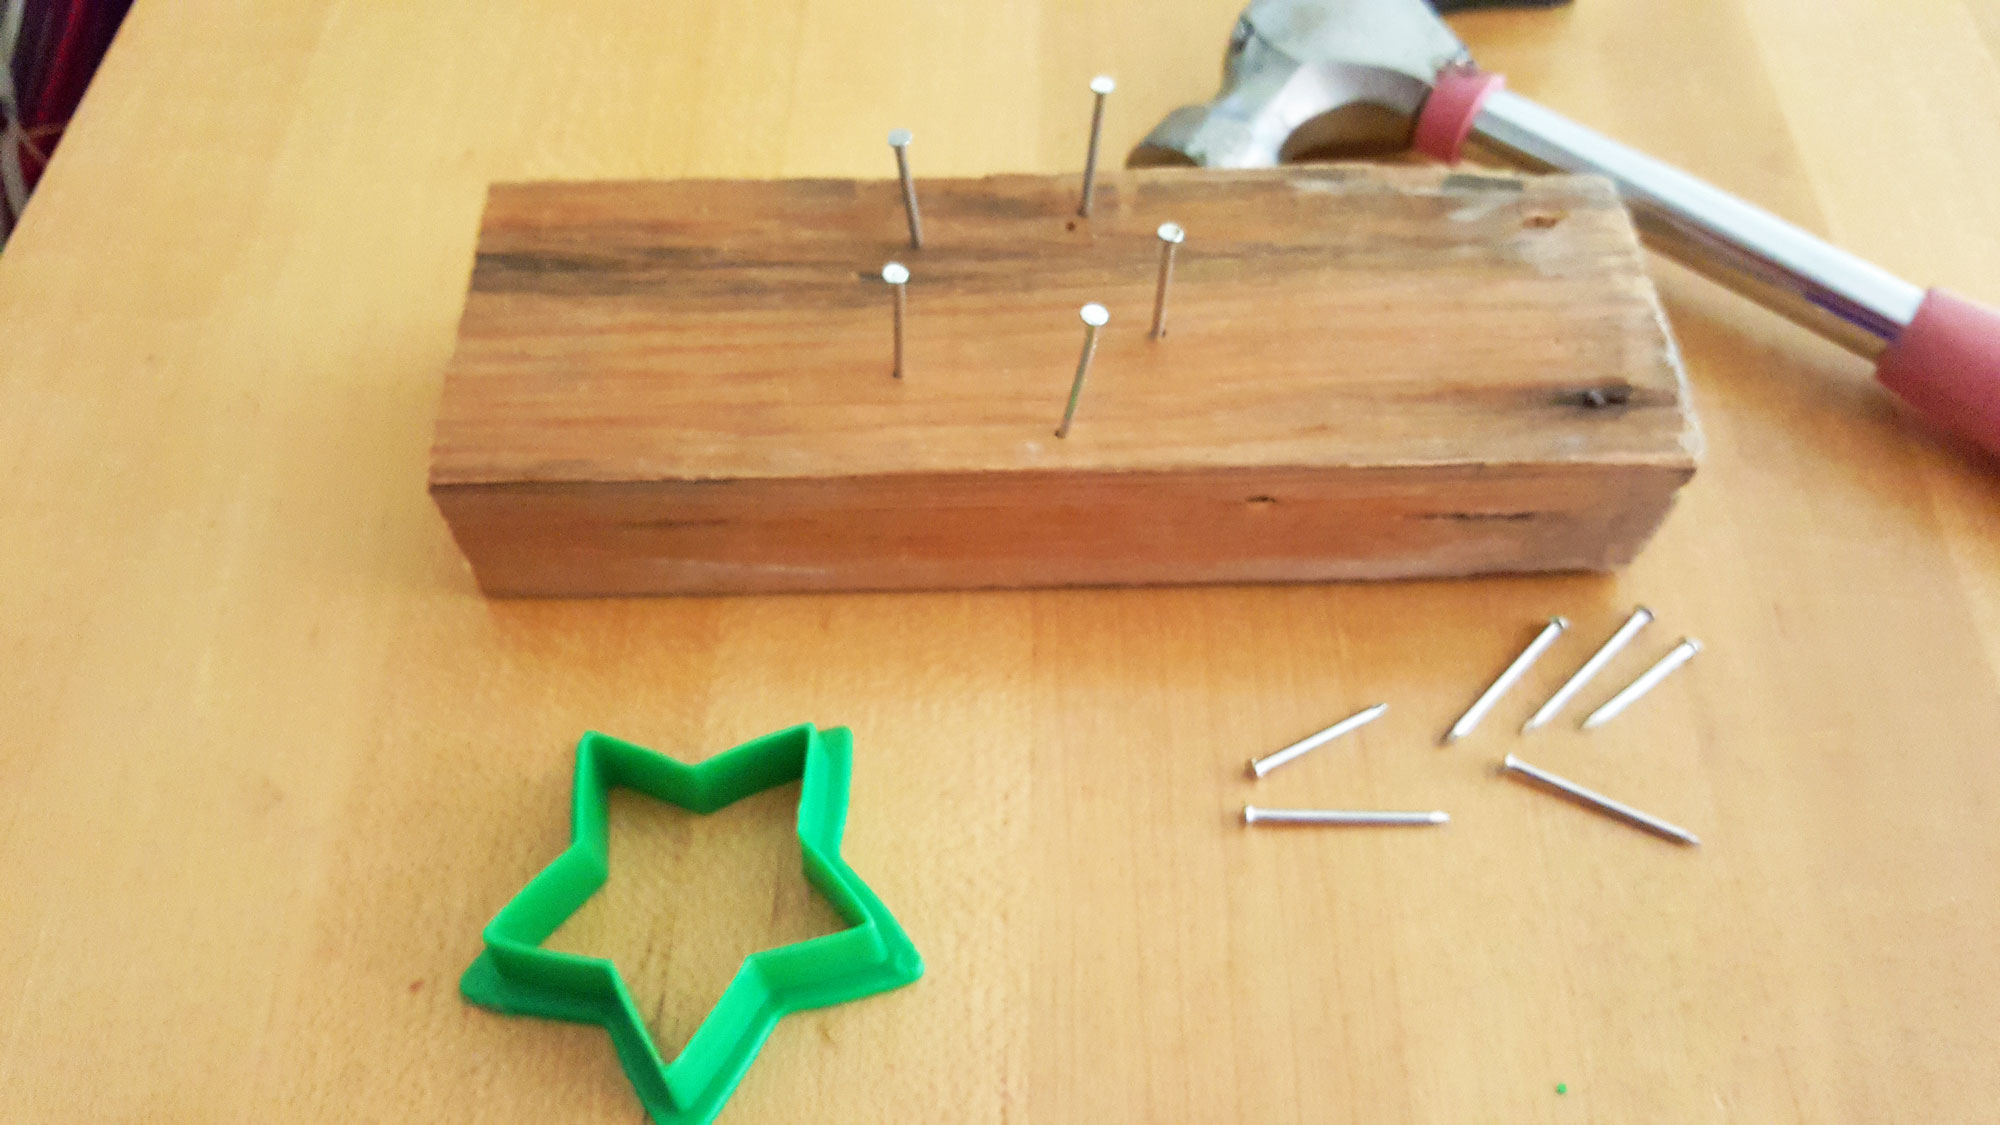 Step 2 is to remove the cookie cutter and leave the nails as a guide | OrnamentShop.com